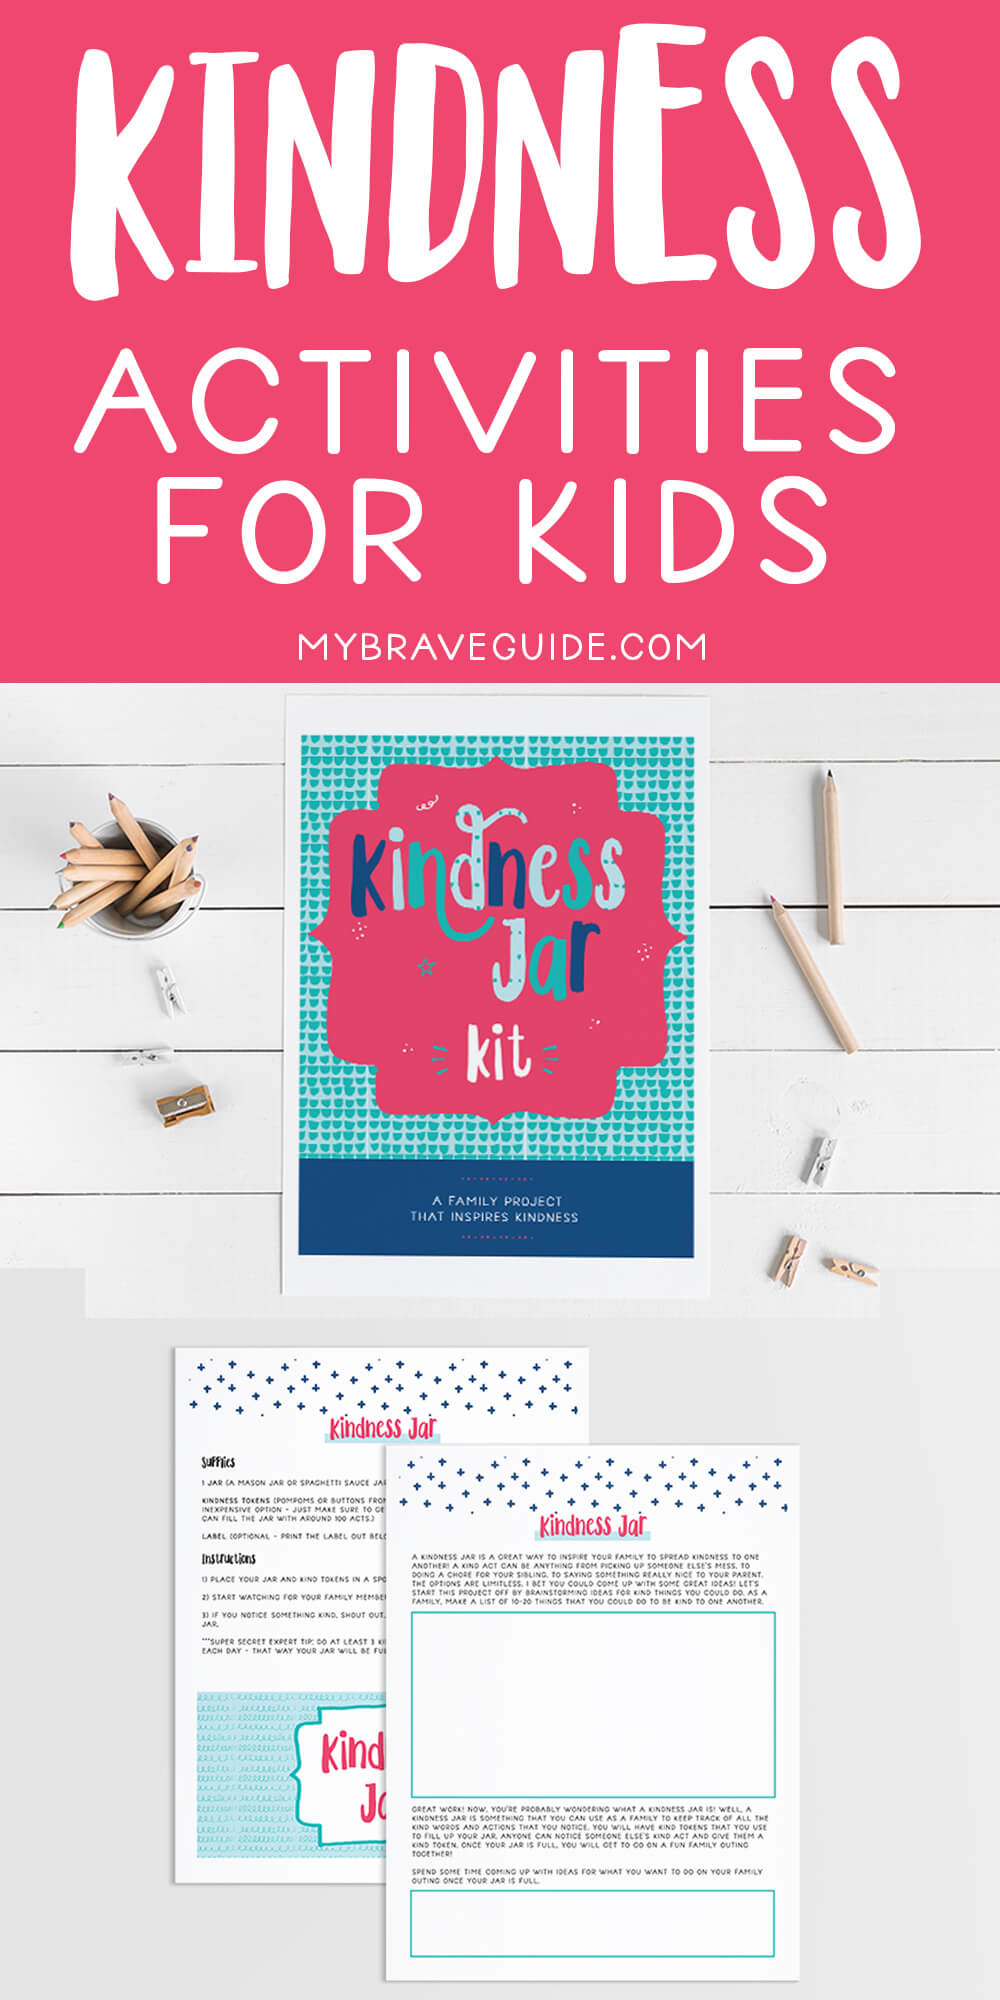 Kindness Activity for Kids